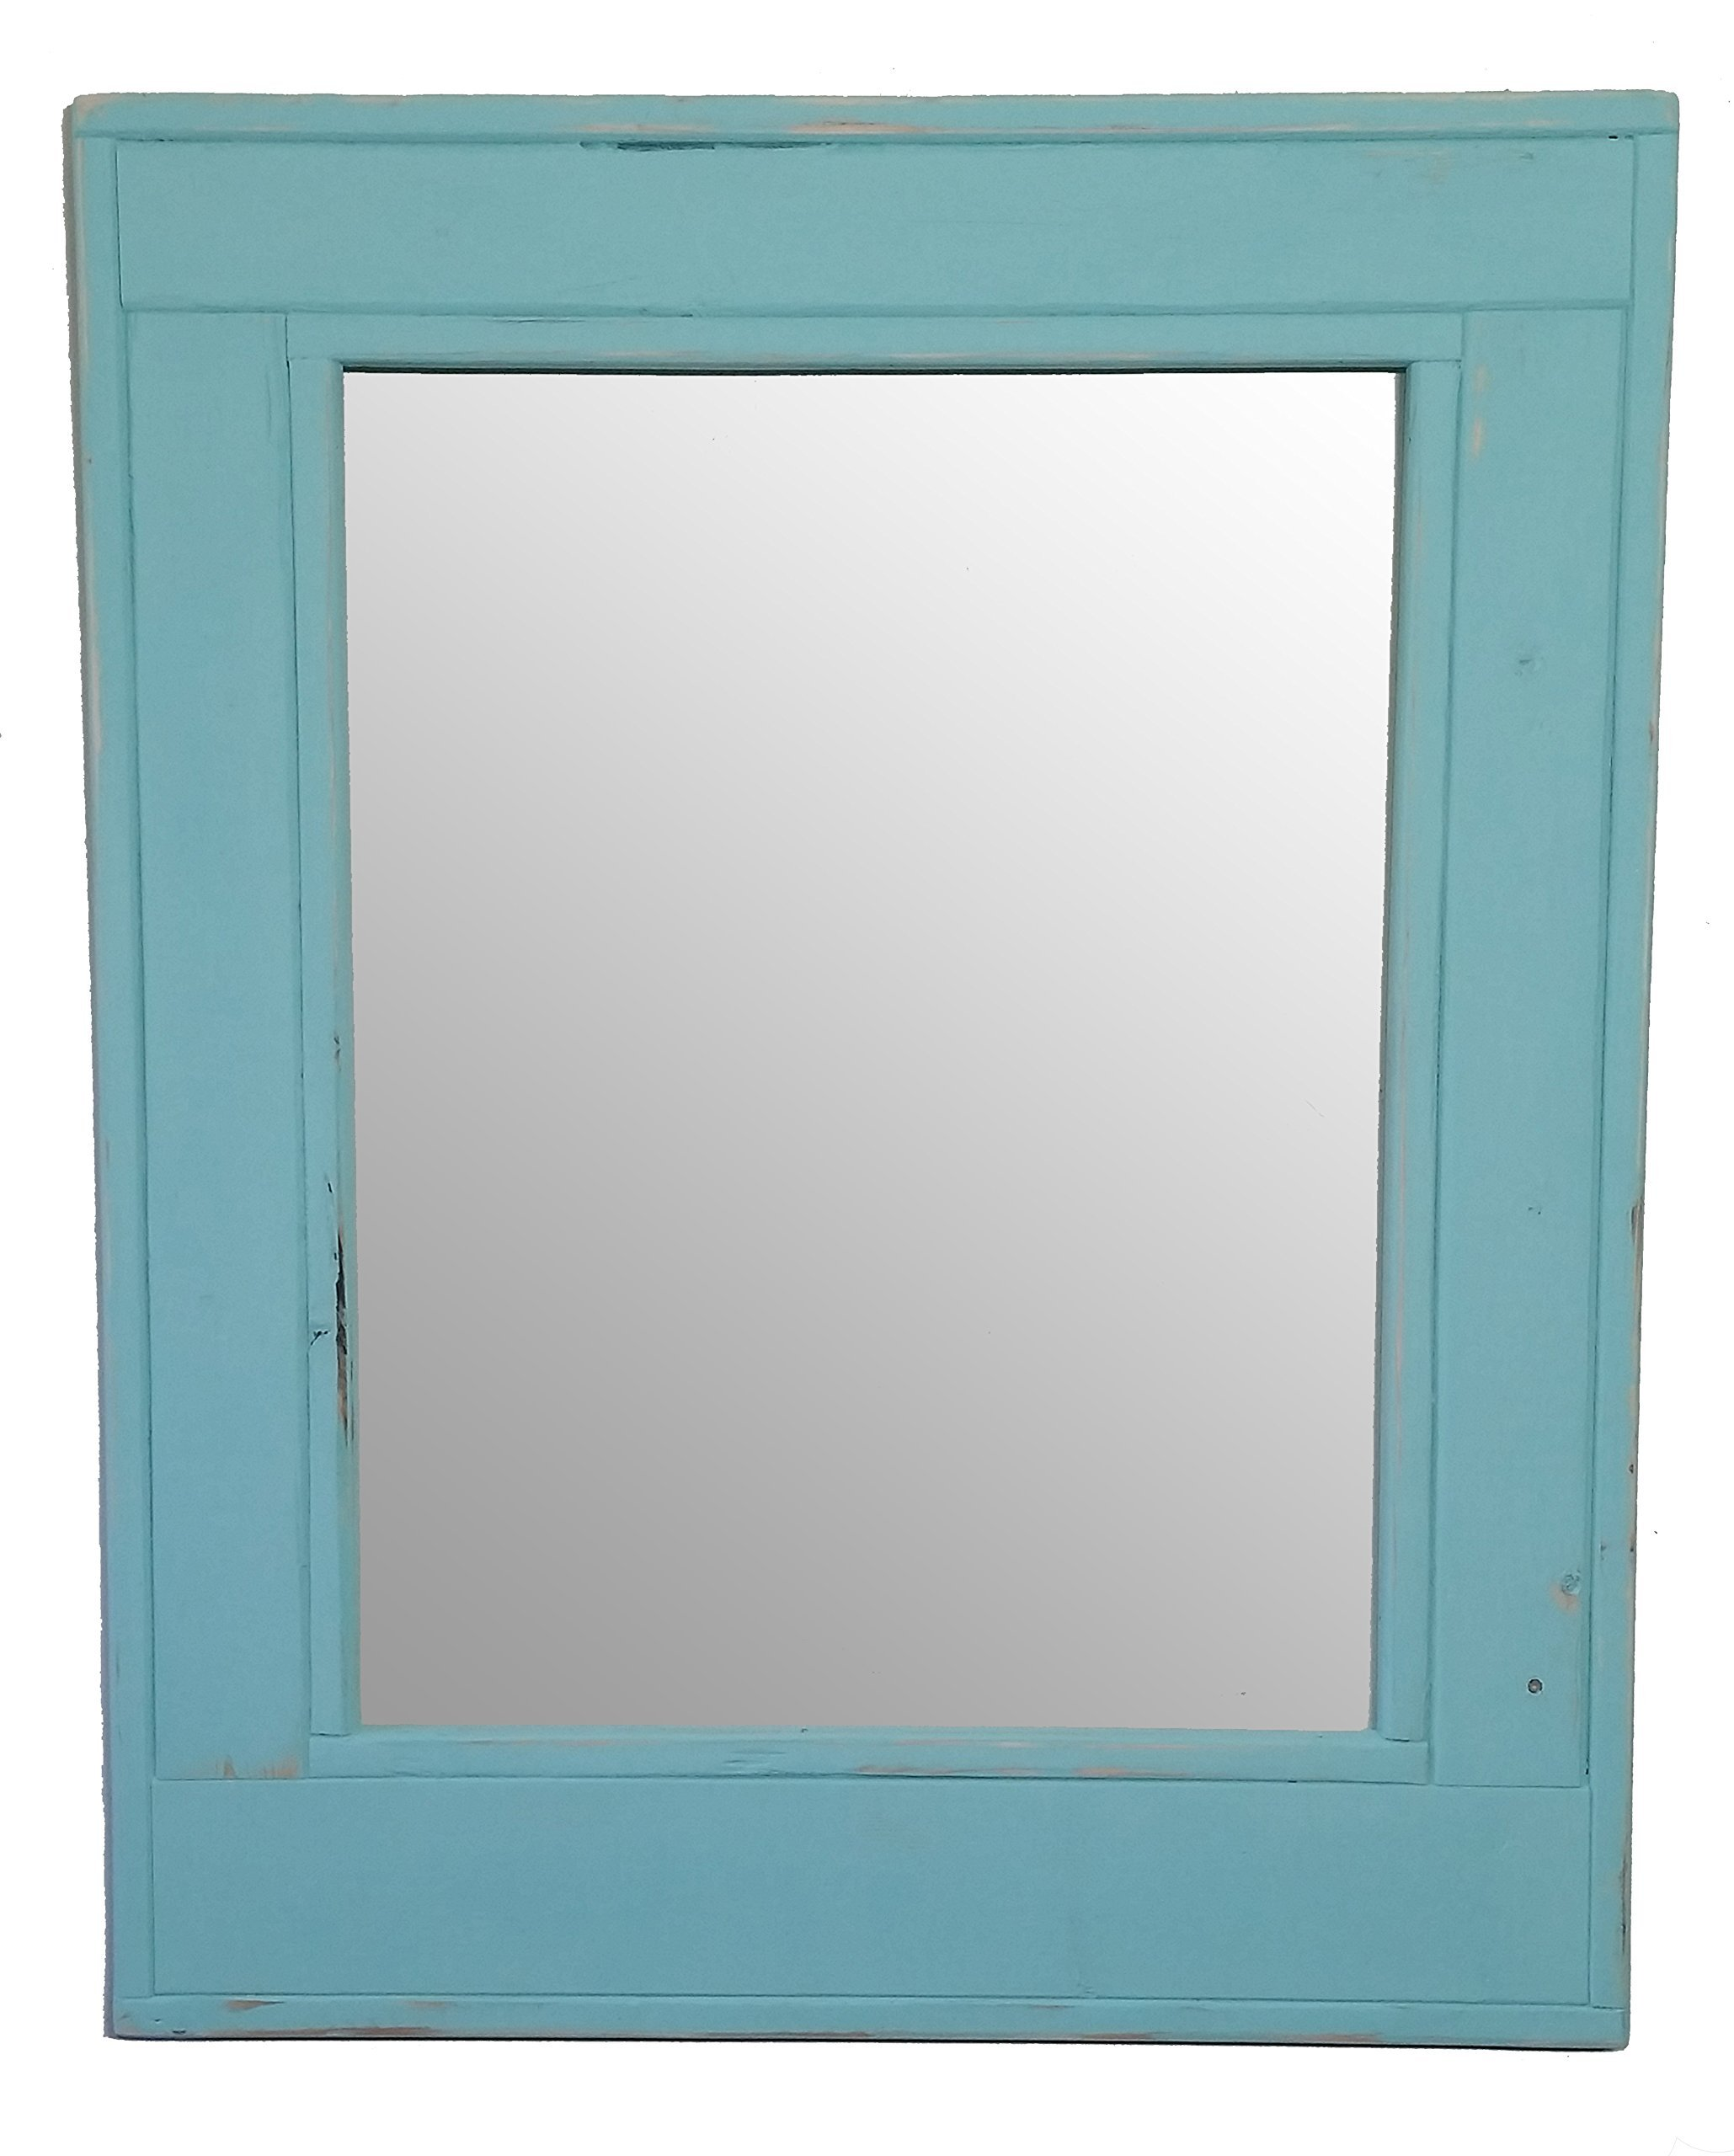 Herringbone 24 x 30 Vertical Framed Mirror Painted Sea Blue with a Distressed Finish - Reclaimed Wood Mirror - Large Wall Mirror - Rustic Modern Home - Home Decor - Mirror - by Renewed Decor